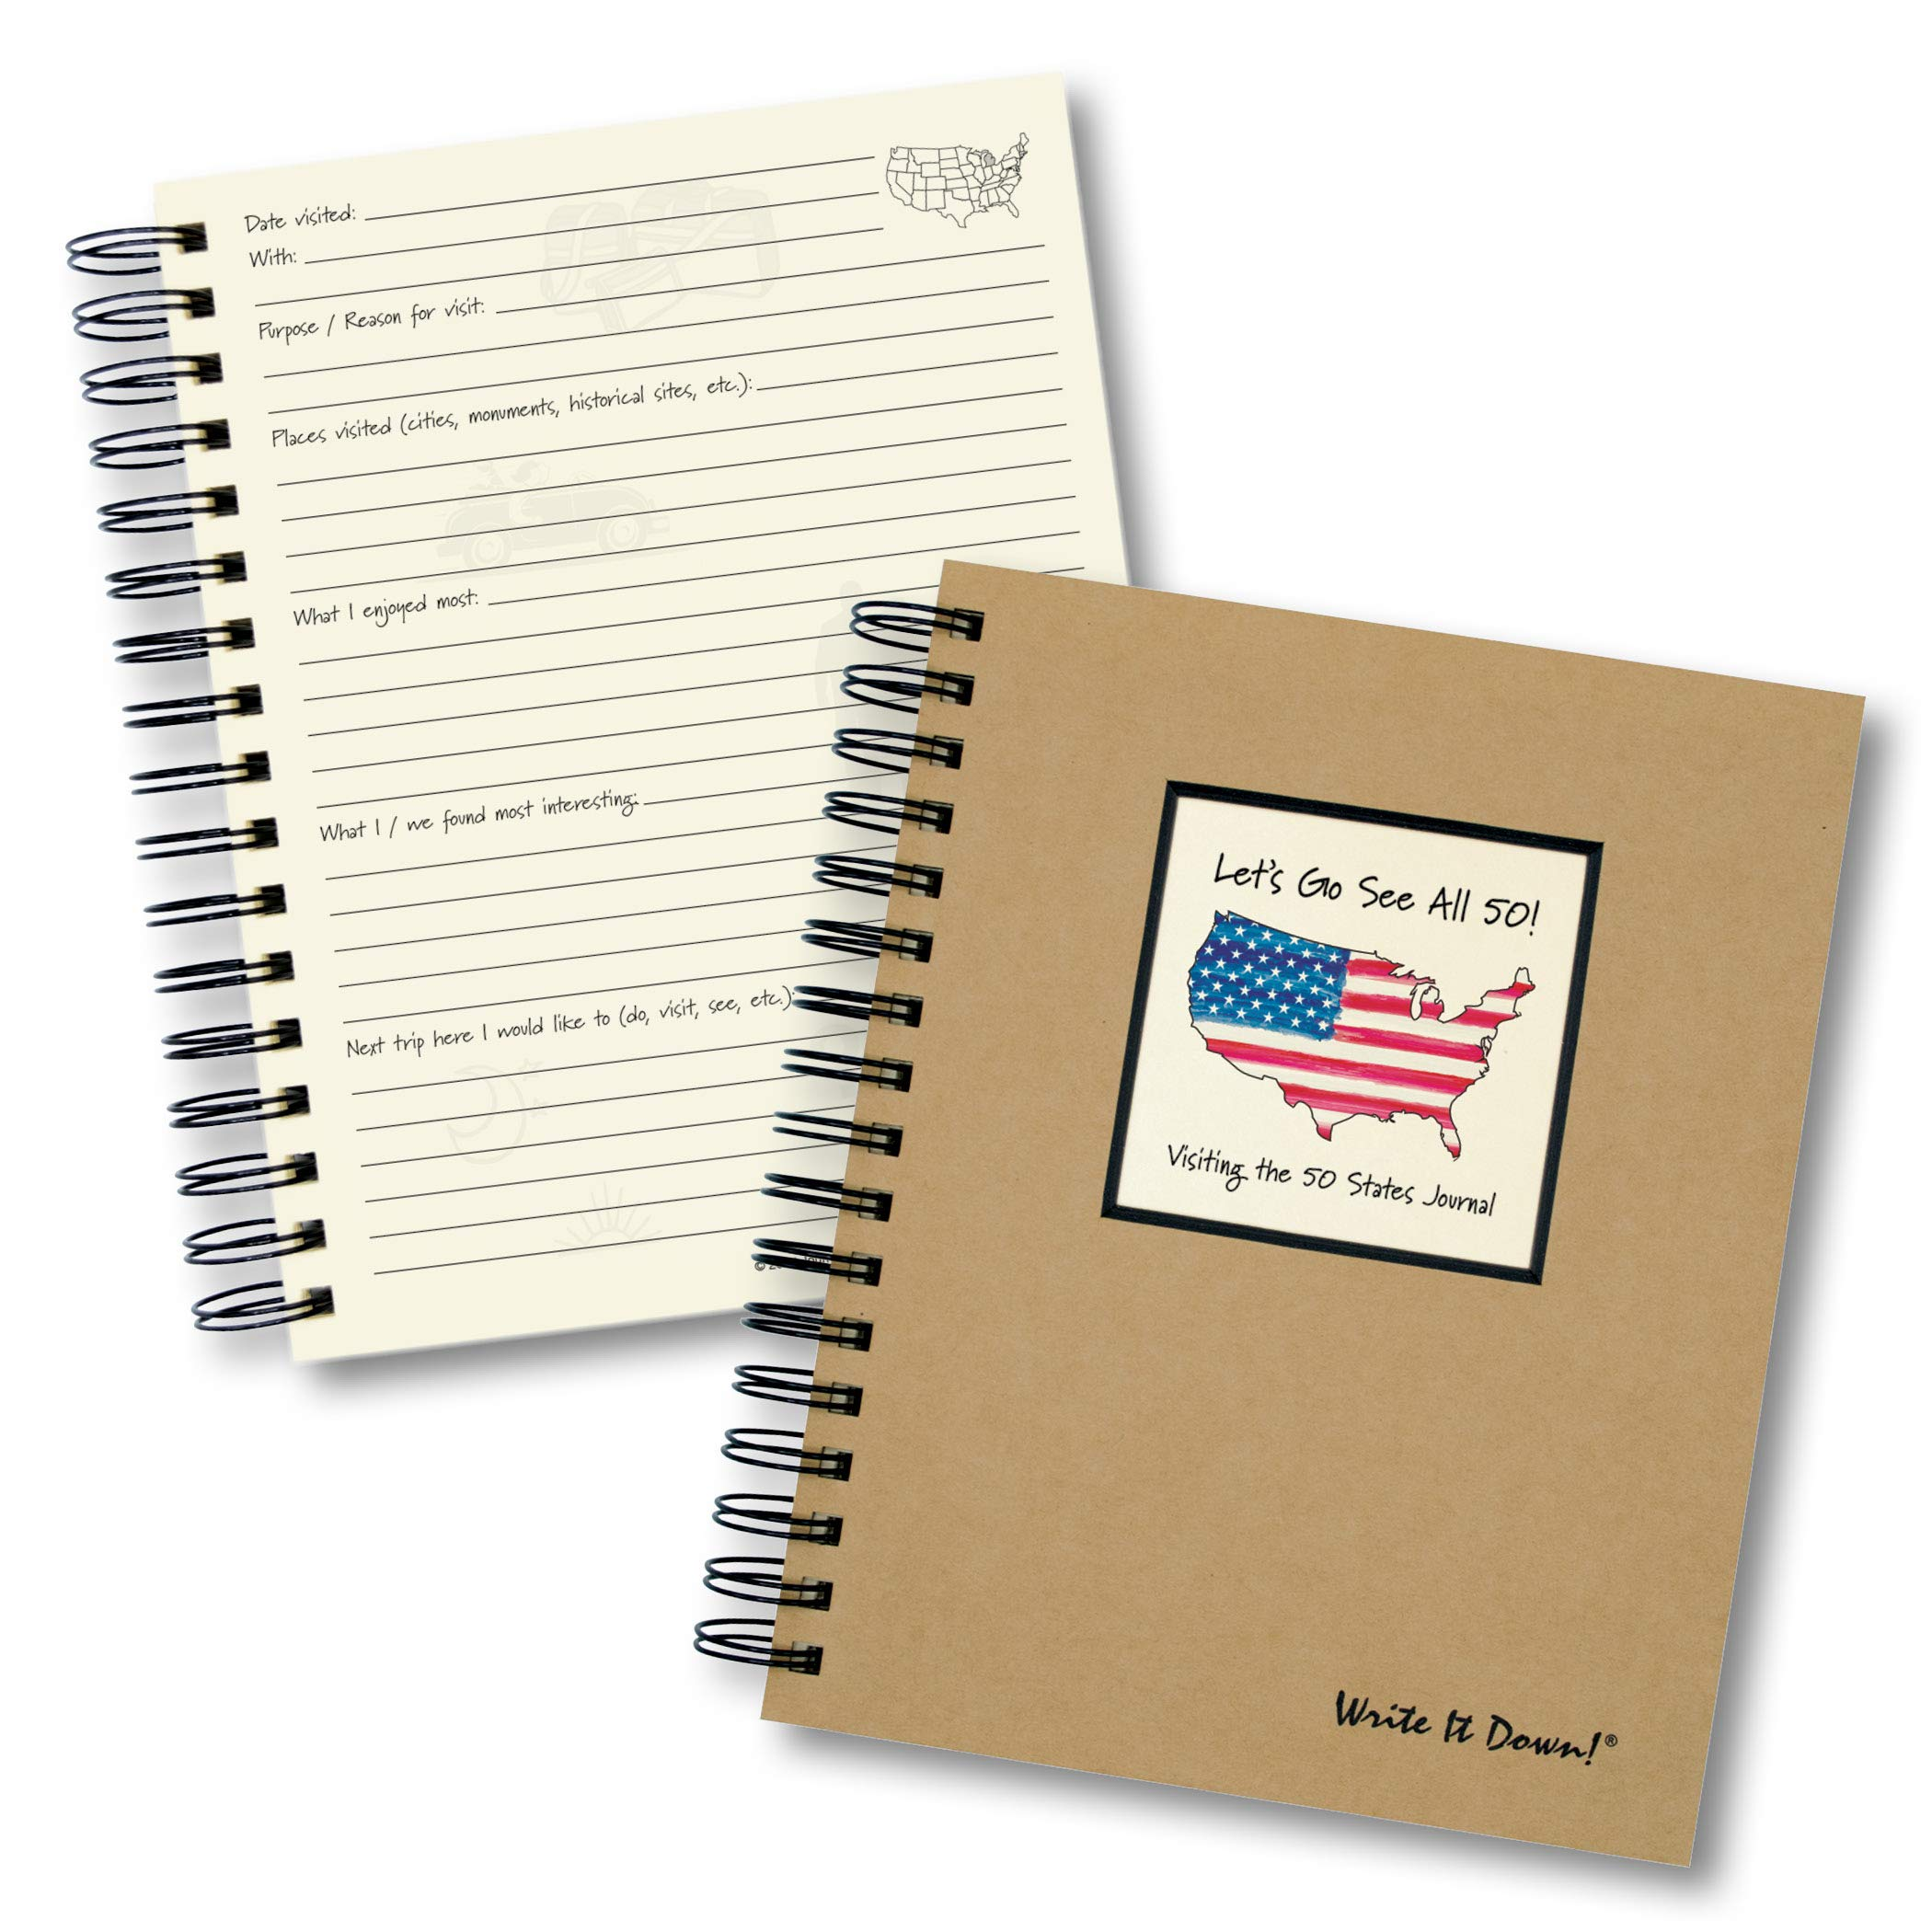 Let's Go See All 50!, Visiting the 50 States Journal - Kraft Hard Cover (prompts on every page, recycled paper, read more)